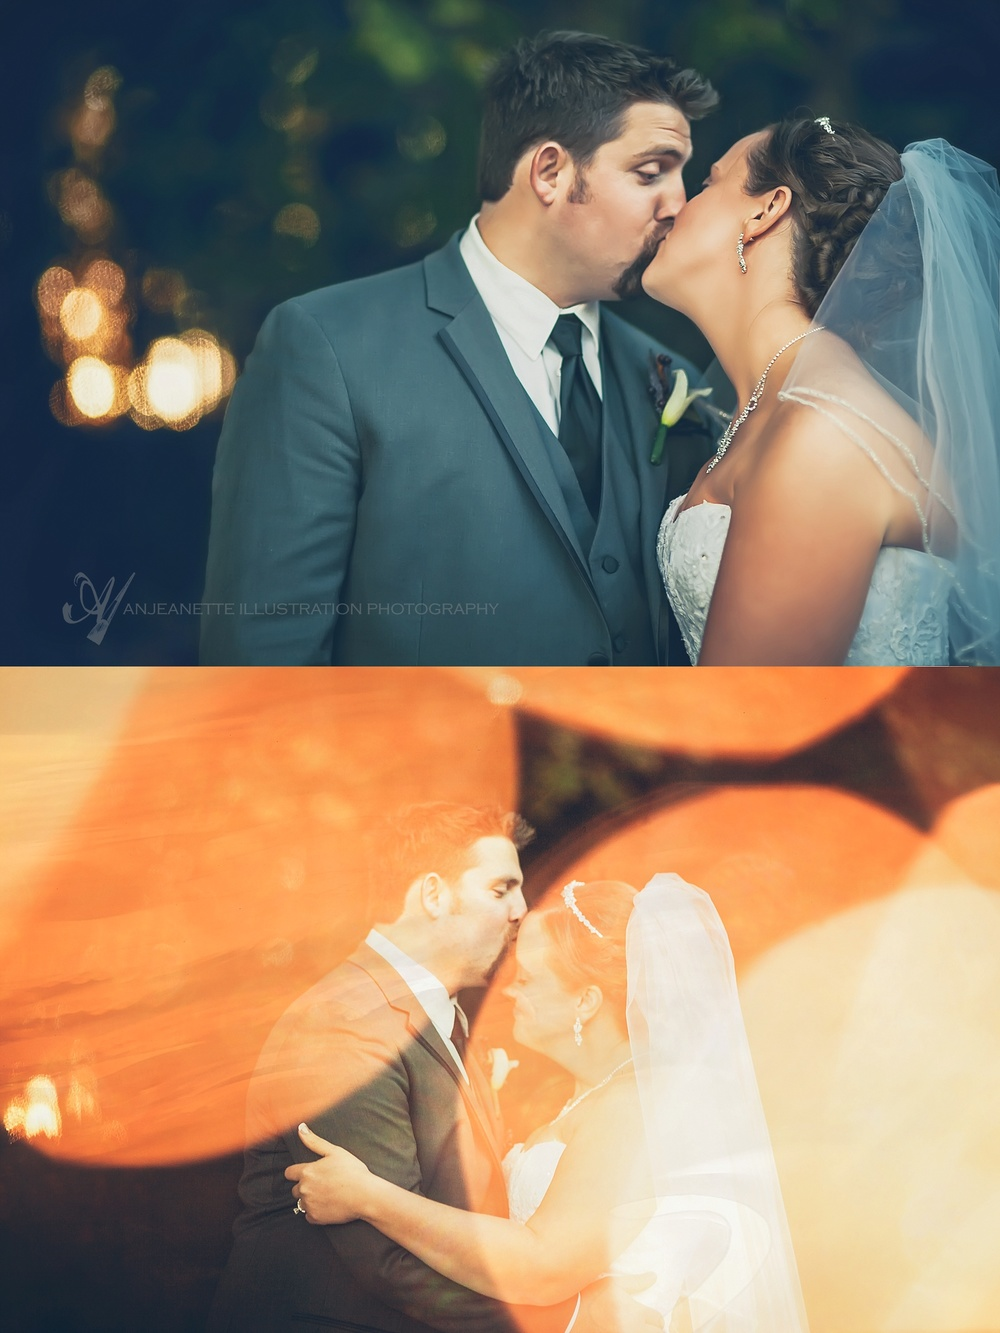 Hendersonville Tn Wedding photographer Anjeanette Illustration Photography